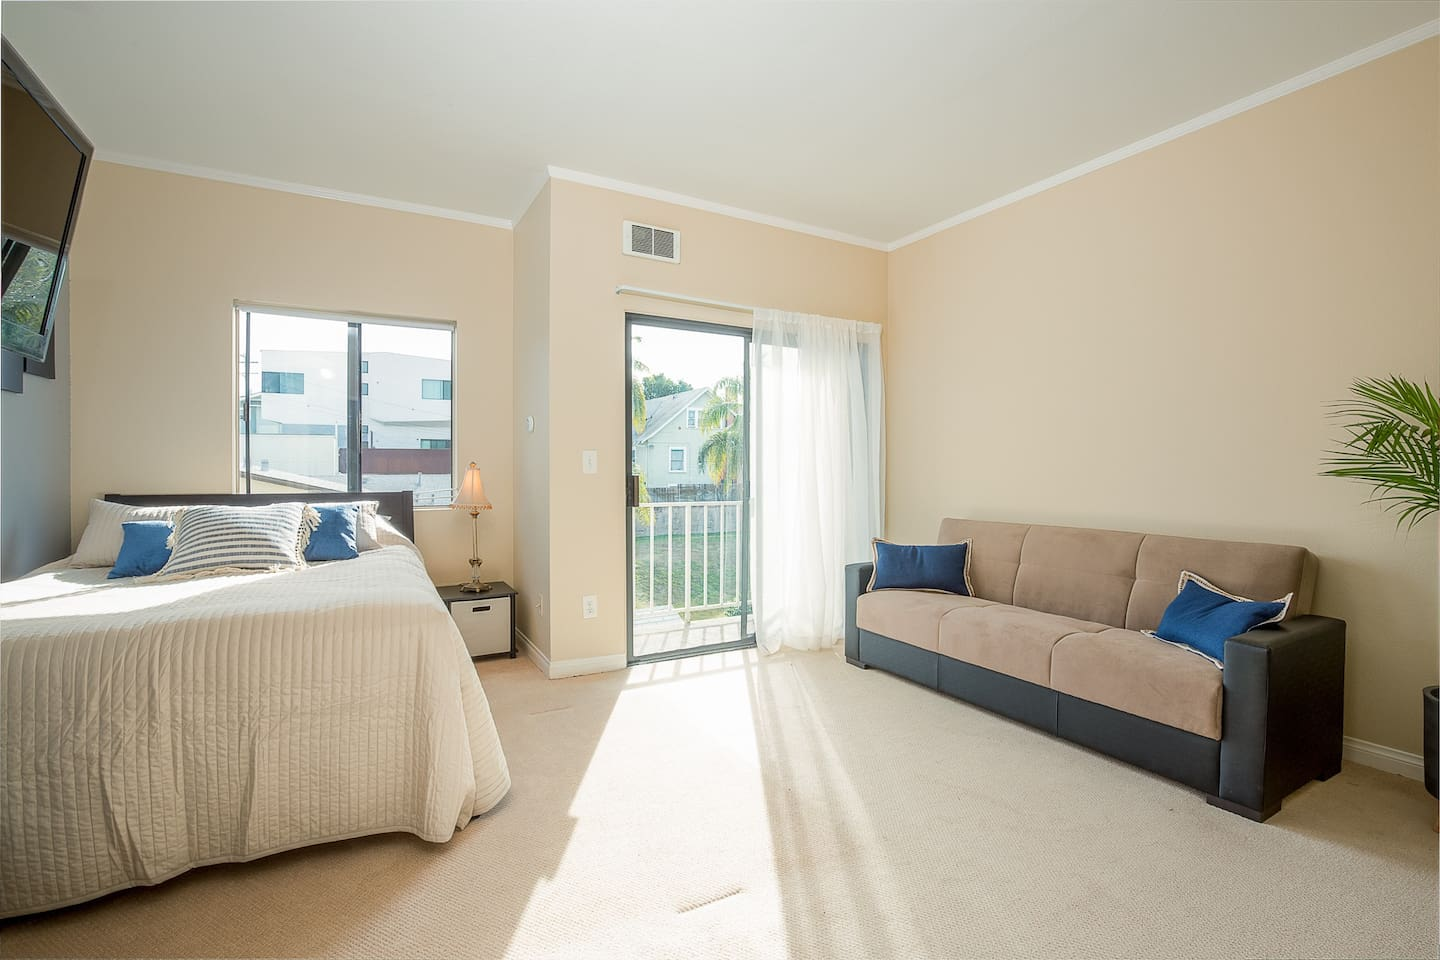 central san diego studio 3 apartments for rent in san diego